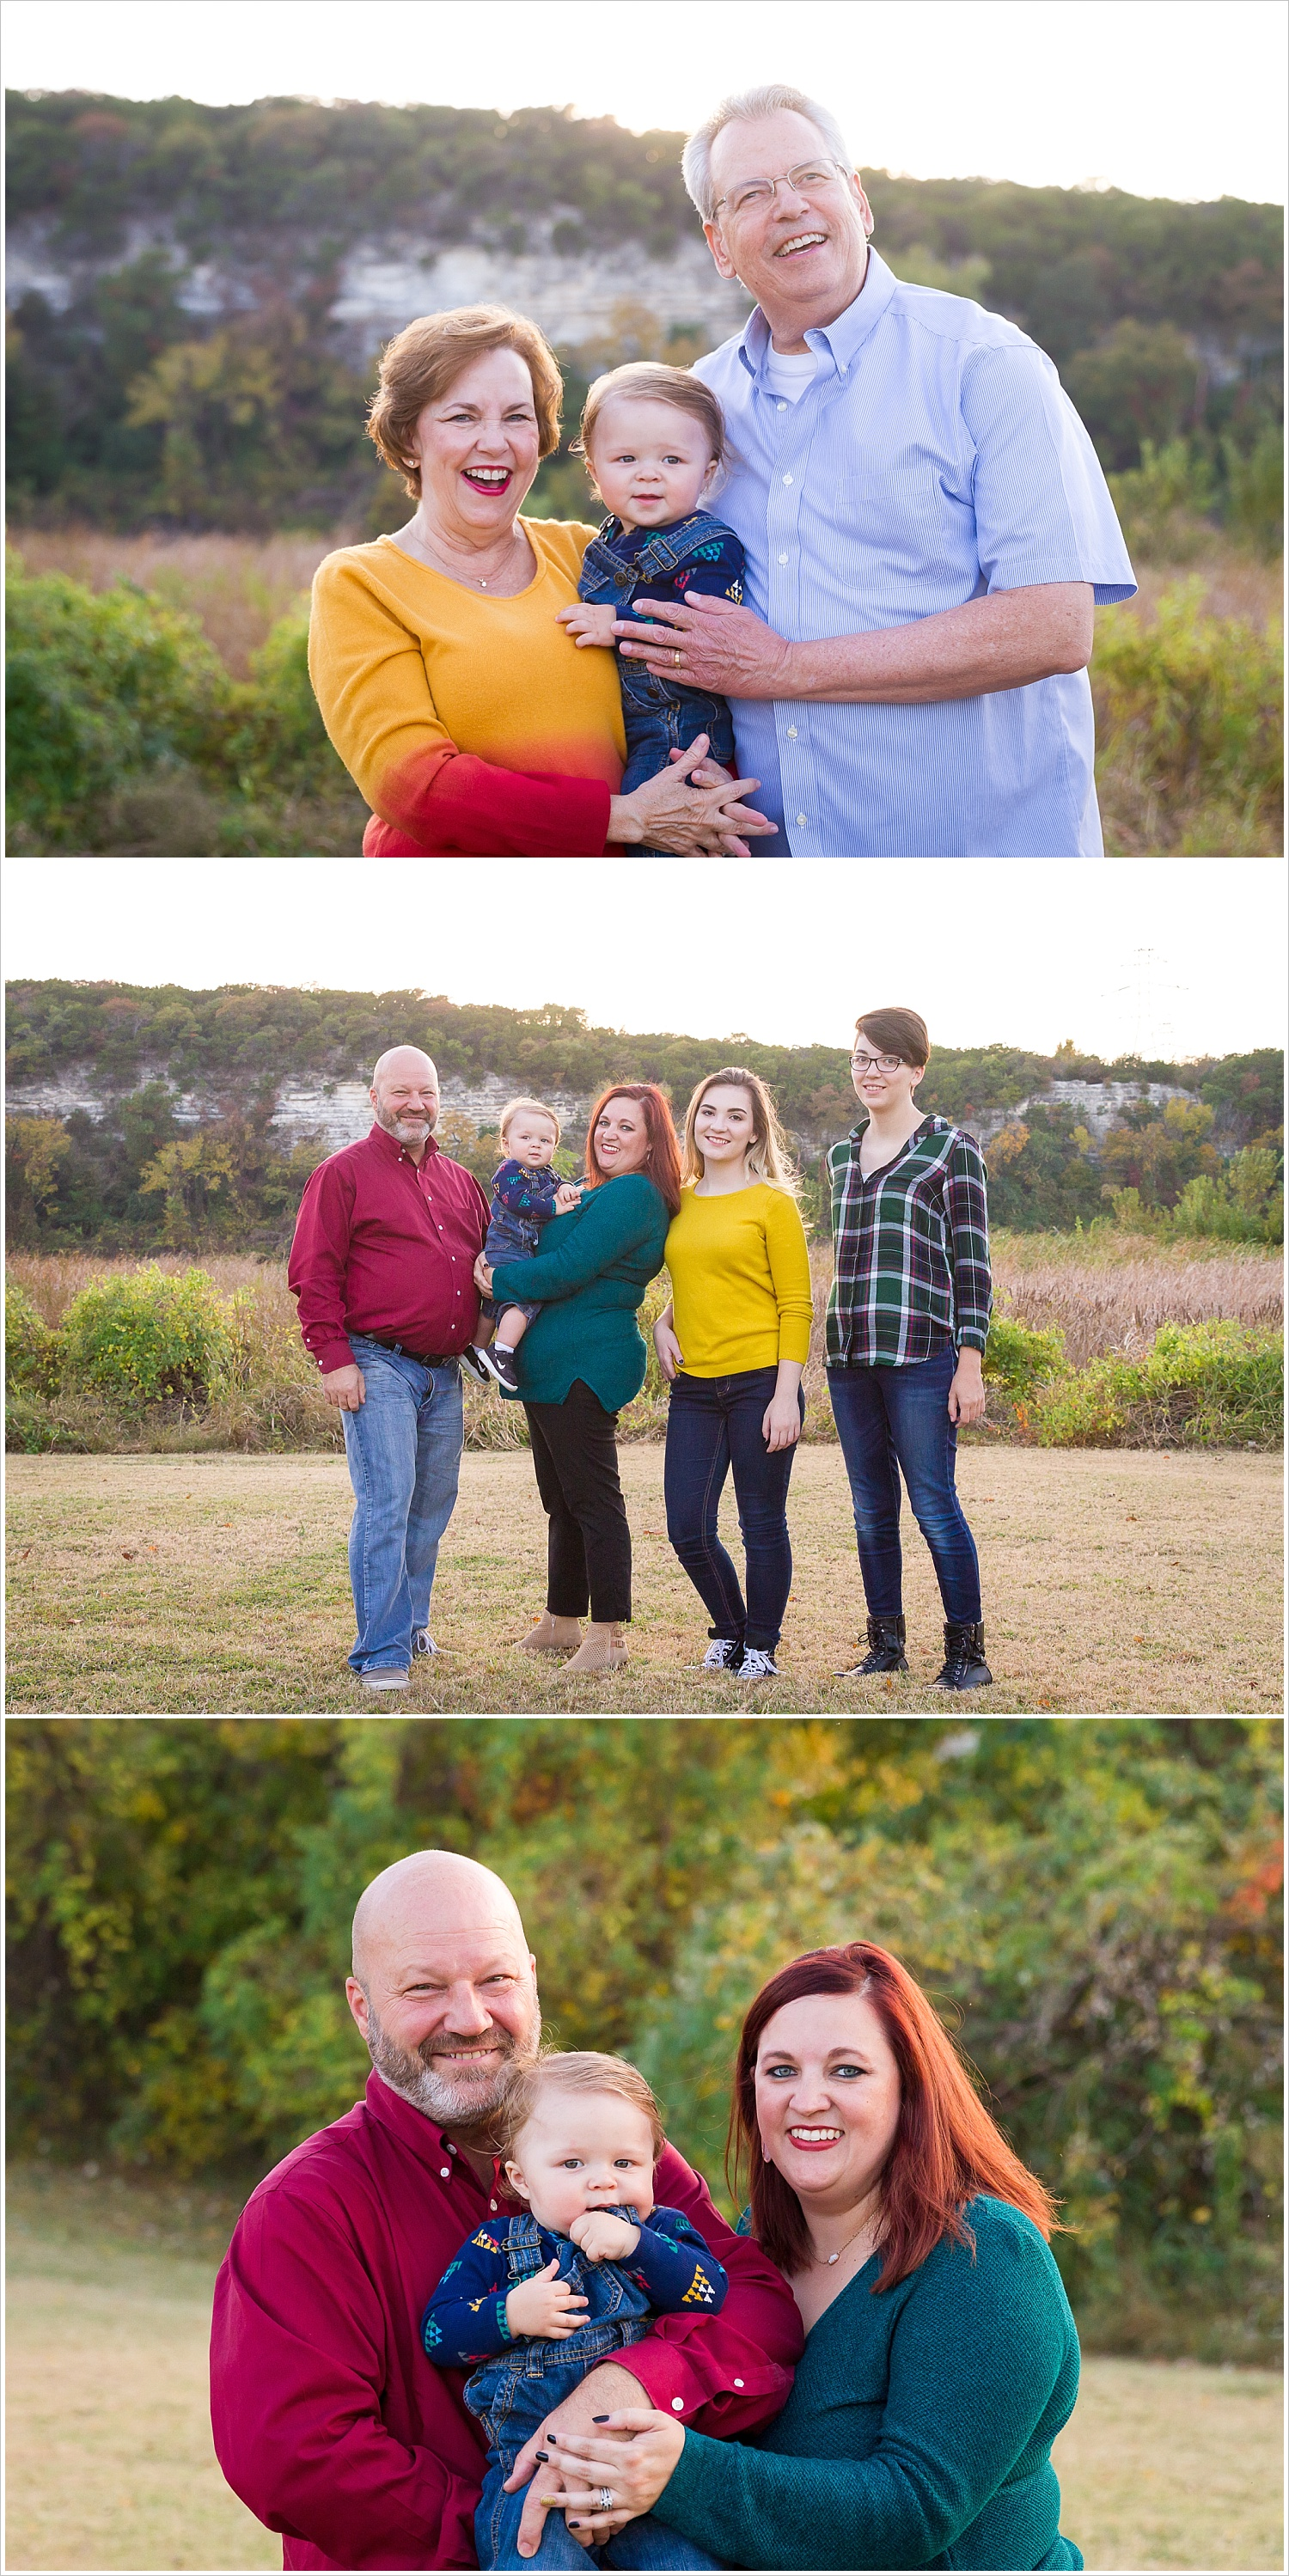 3 generations of a family pose together in the fall colors of Waco, Texas - Jason & Melaina Photography - www.jasonandmelaina.com